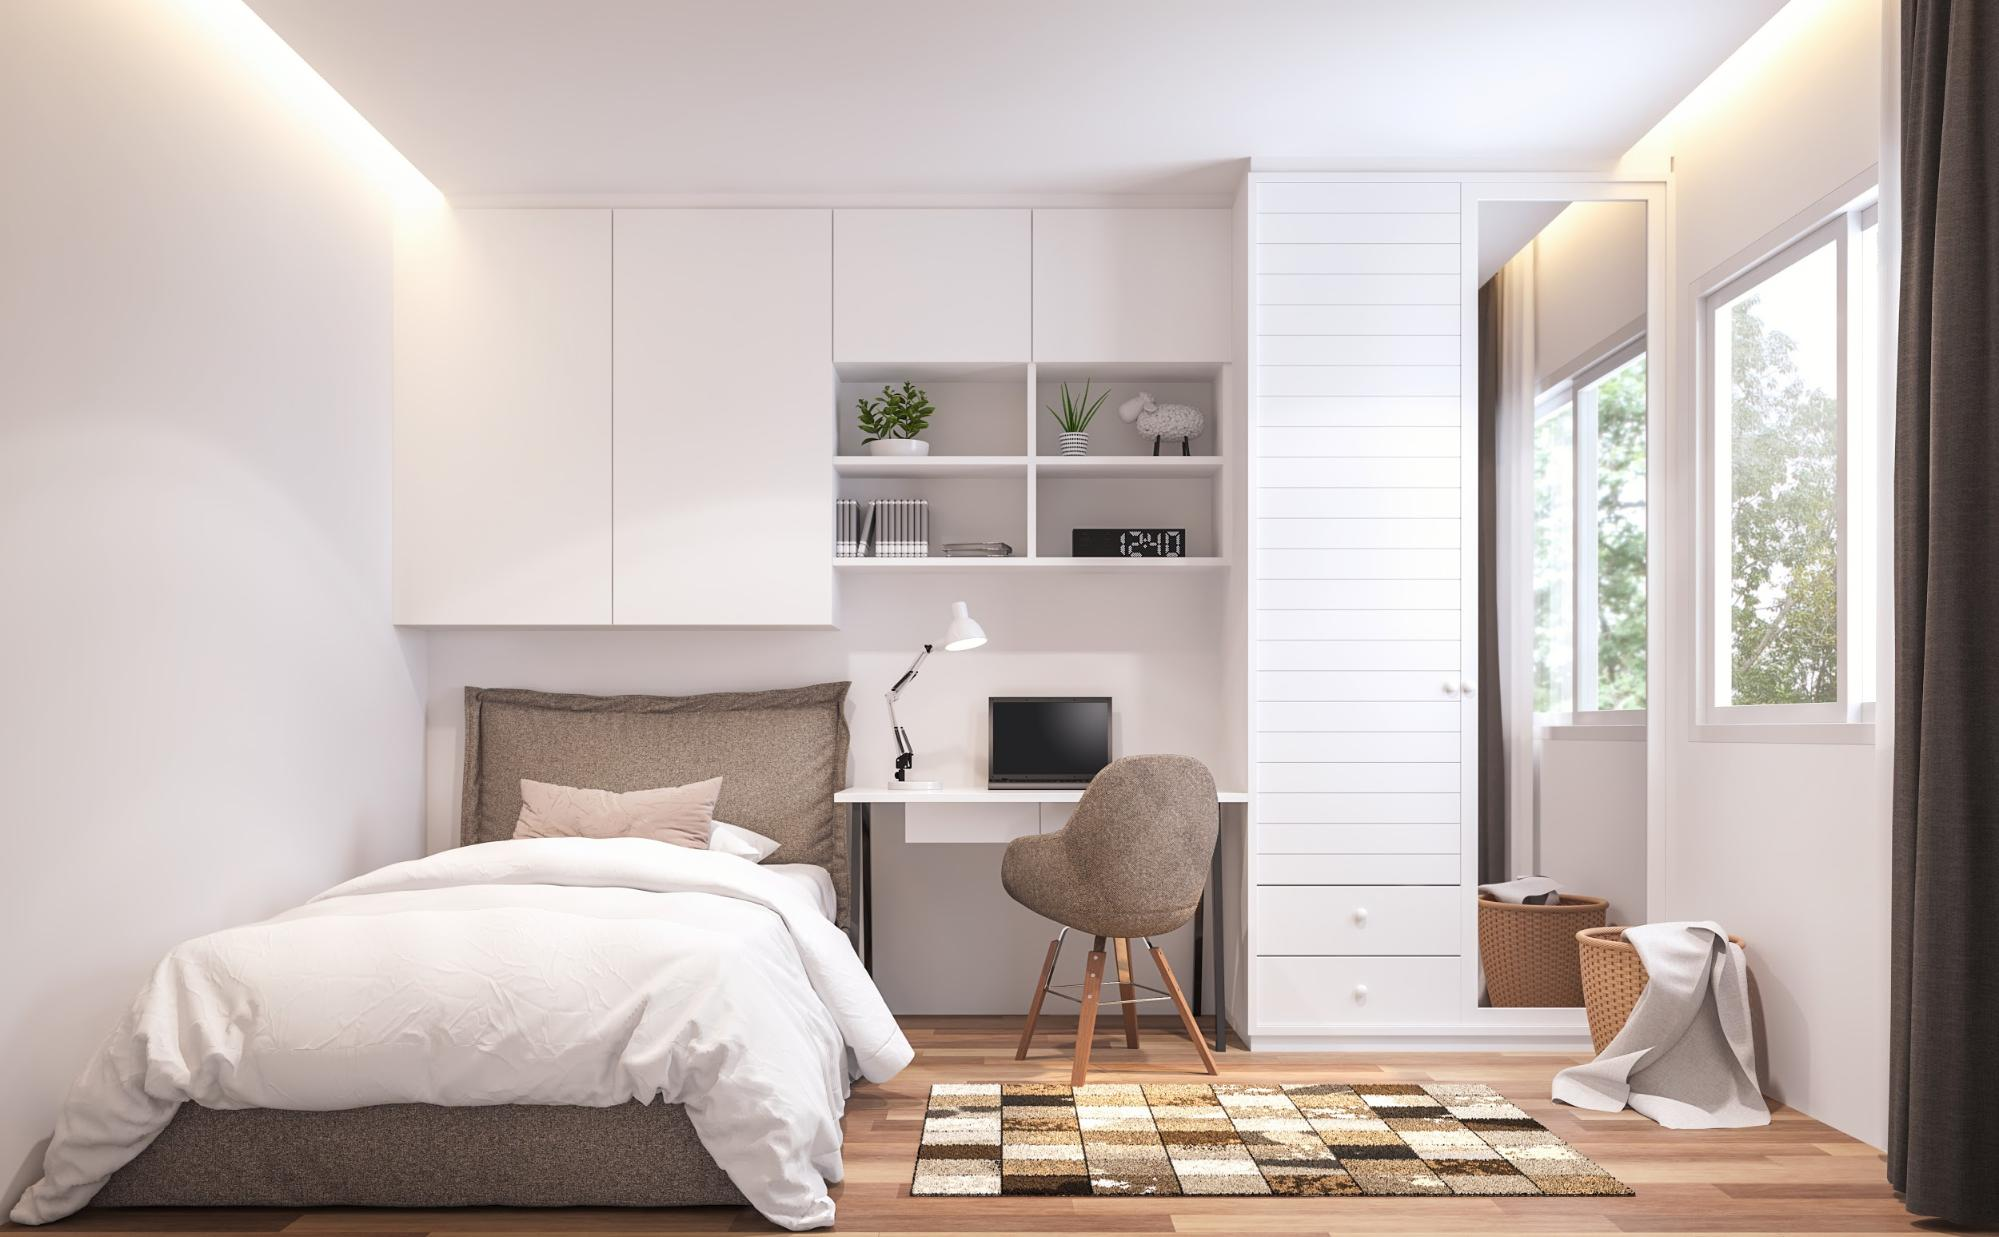 You might have limited space, but you have unlimited options. Reclaim your space (and your sanity) with these small bedroom storage ideas.